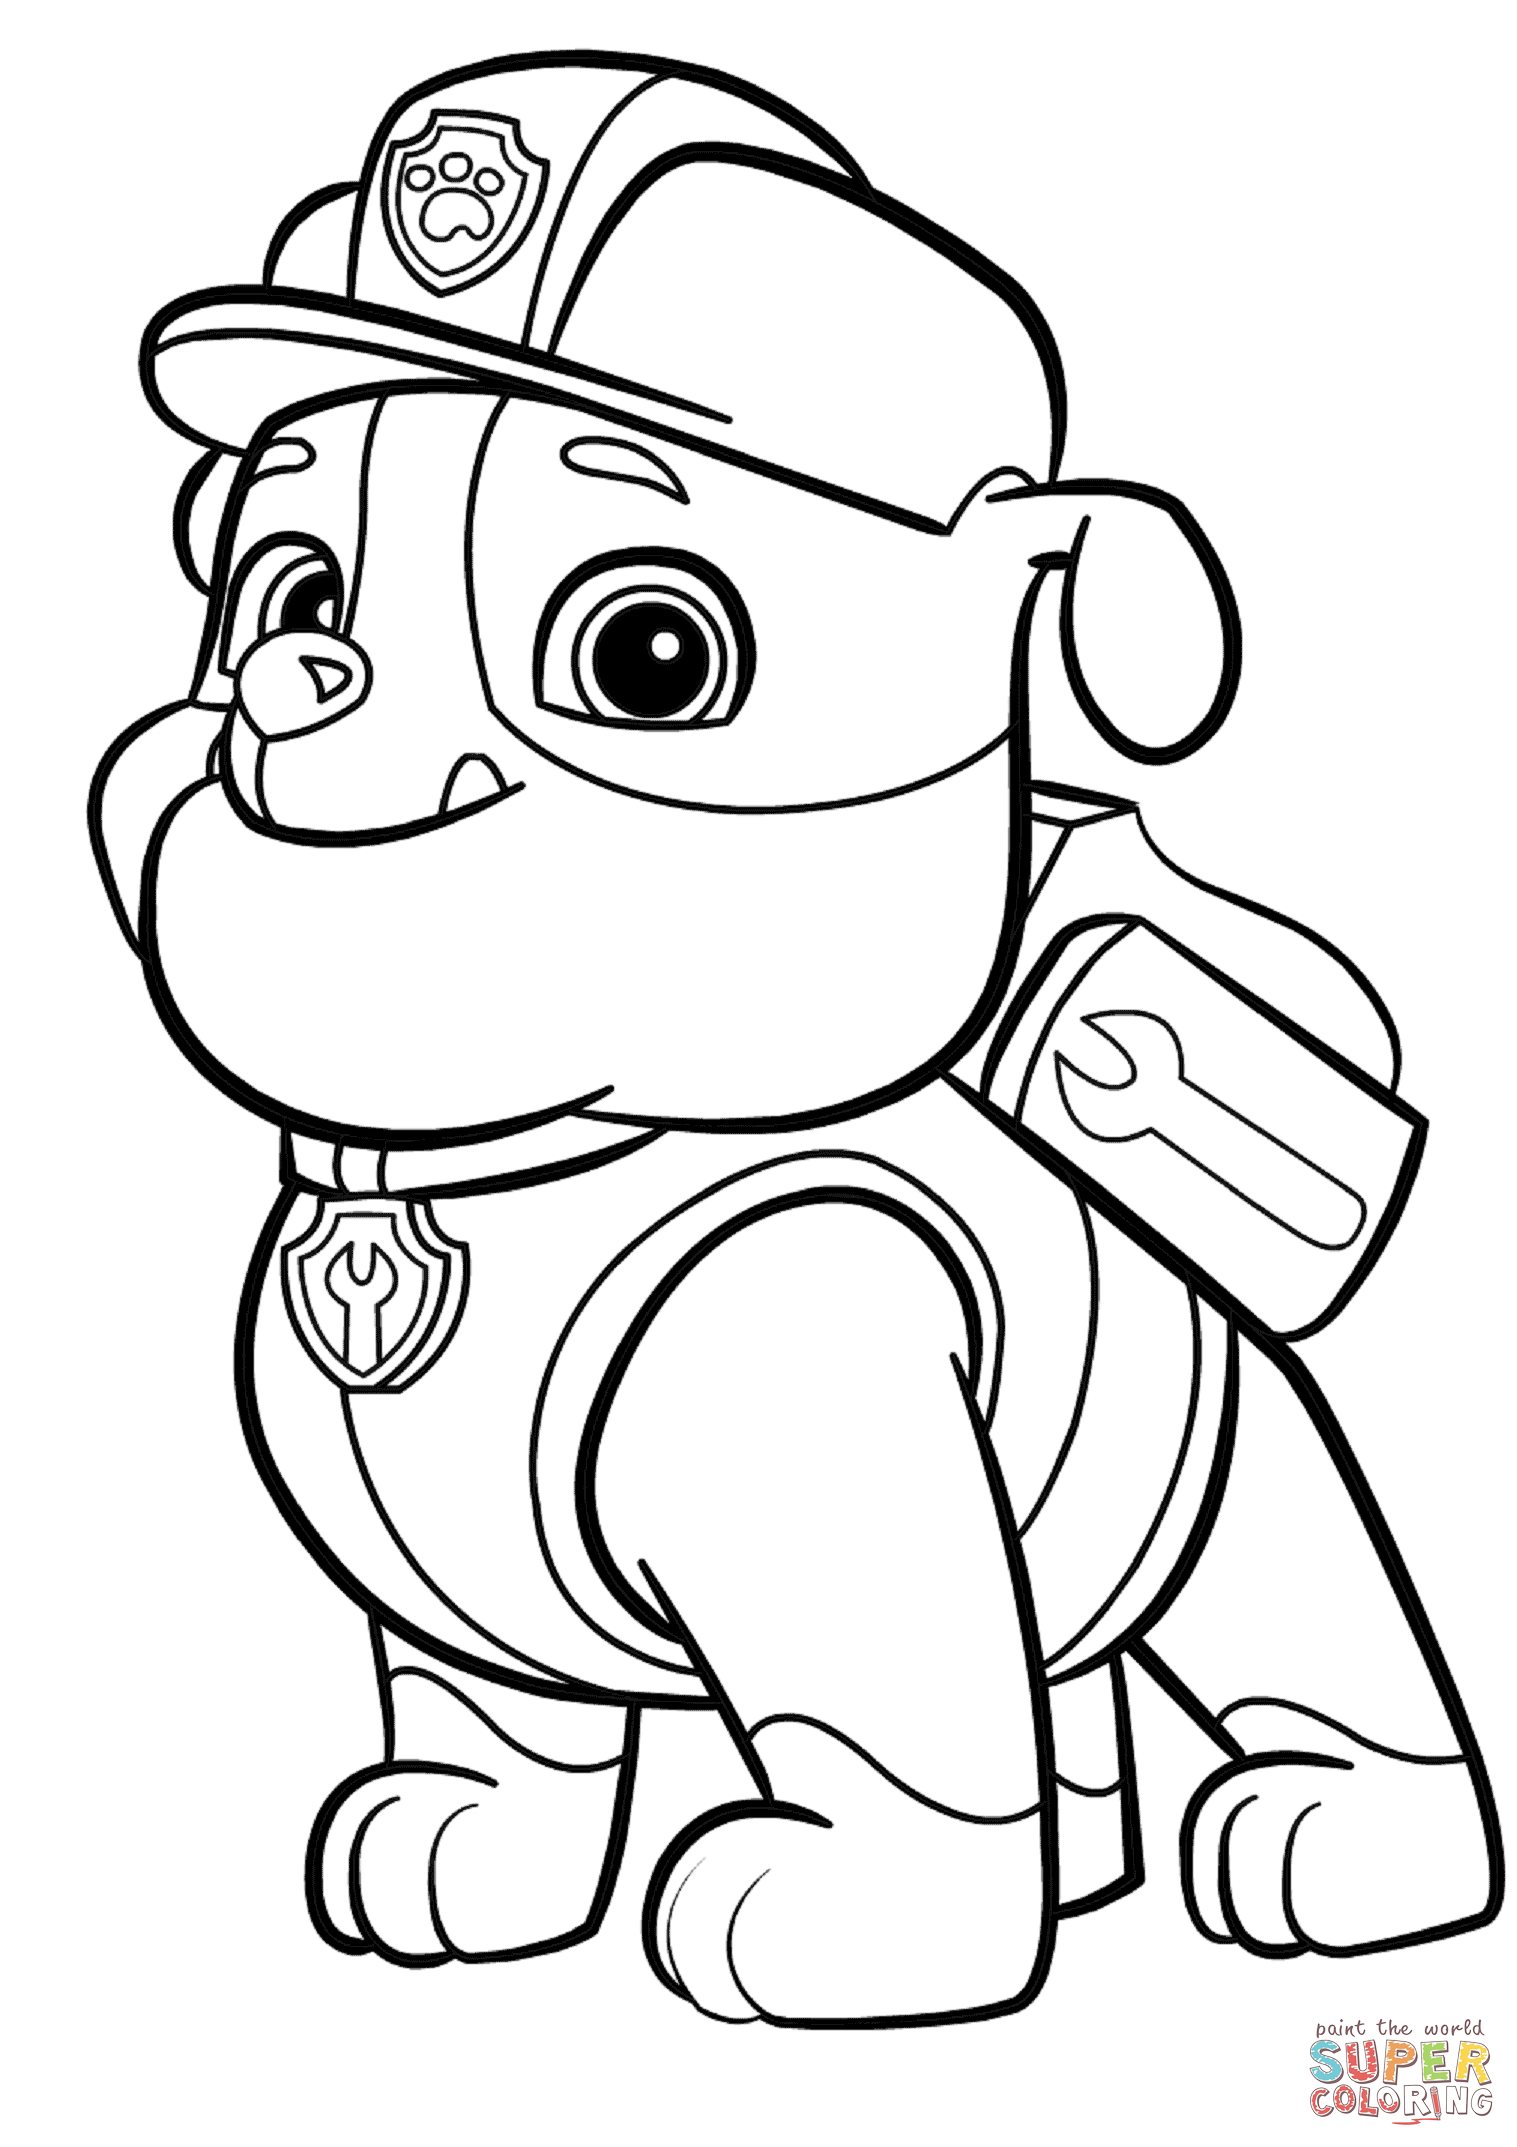 coloring images paw patrol paw patrol 20 coloring page free coloring pages online coloring patrol paw images